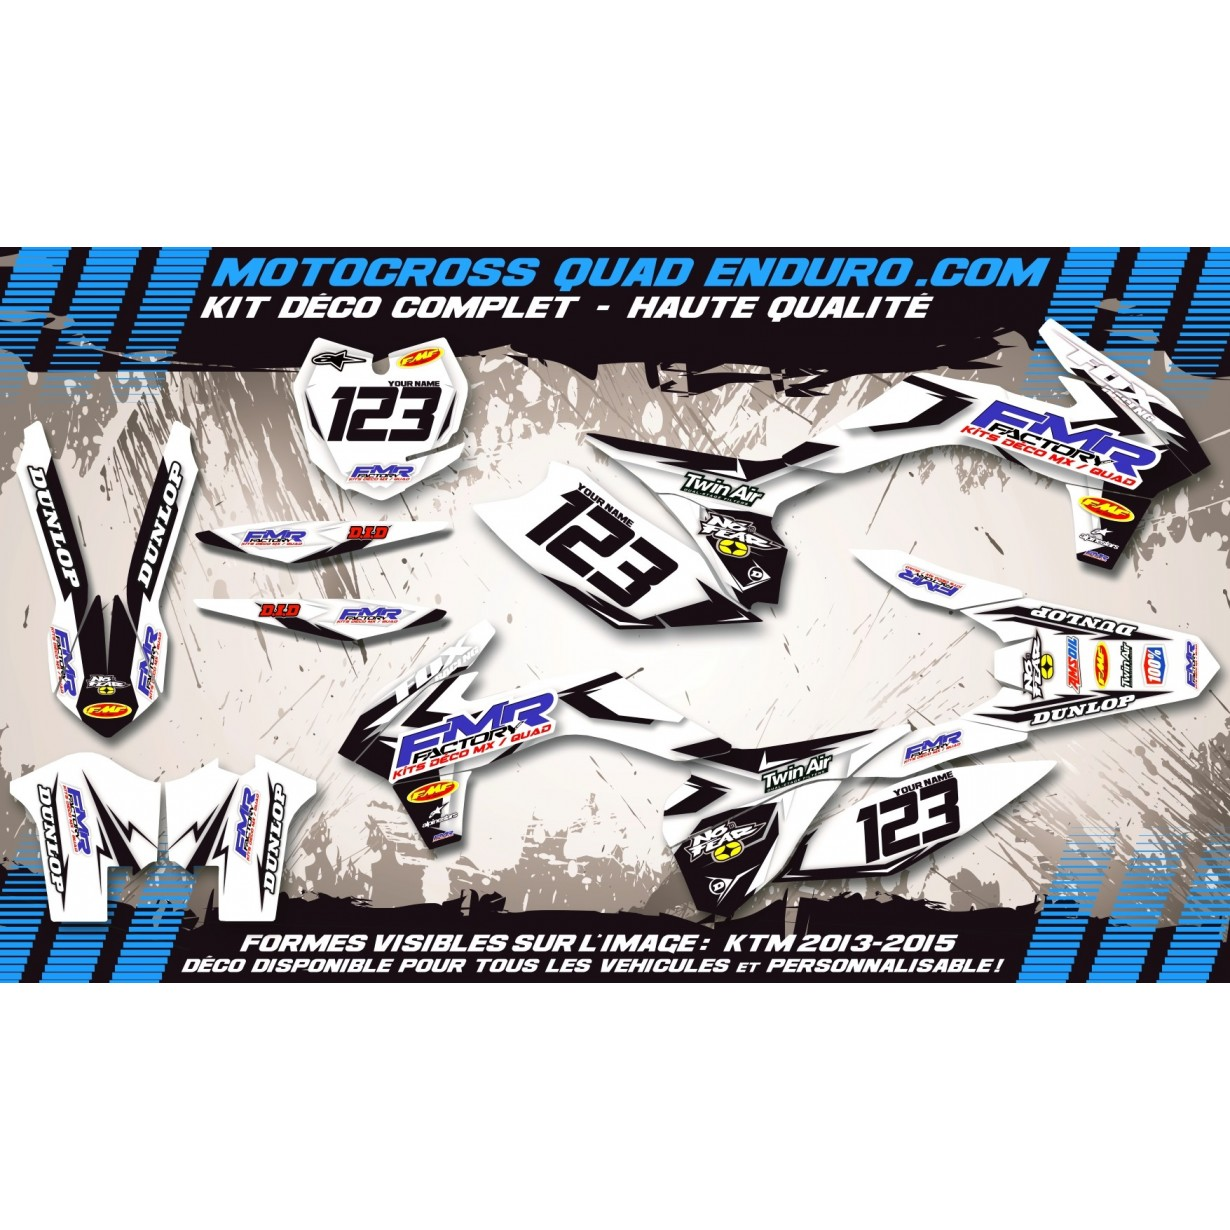 KIT DÉCO Perso TC 250 à 510 05-07 Fmr factory WT Edition MA13WT